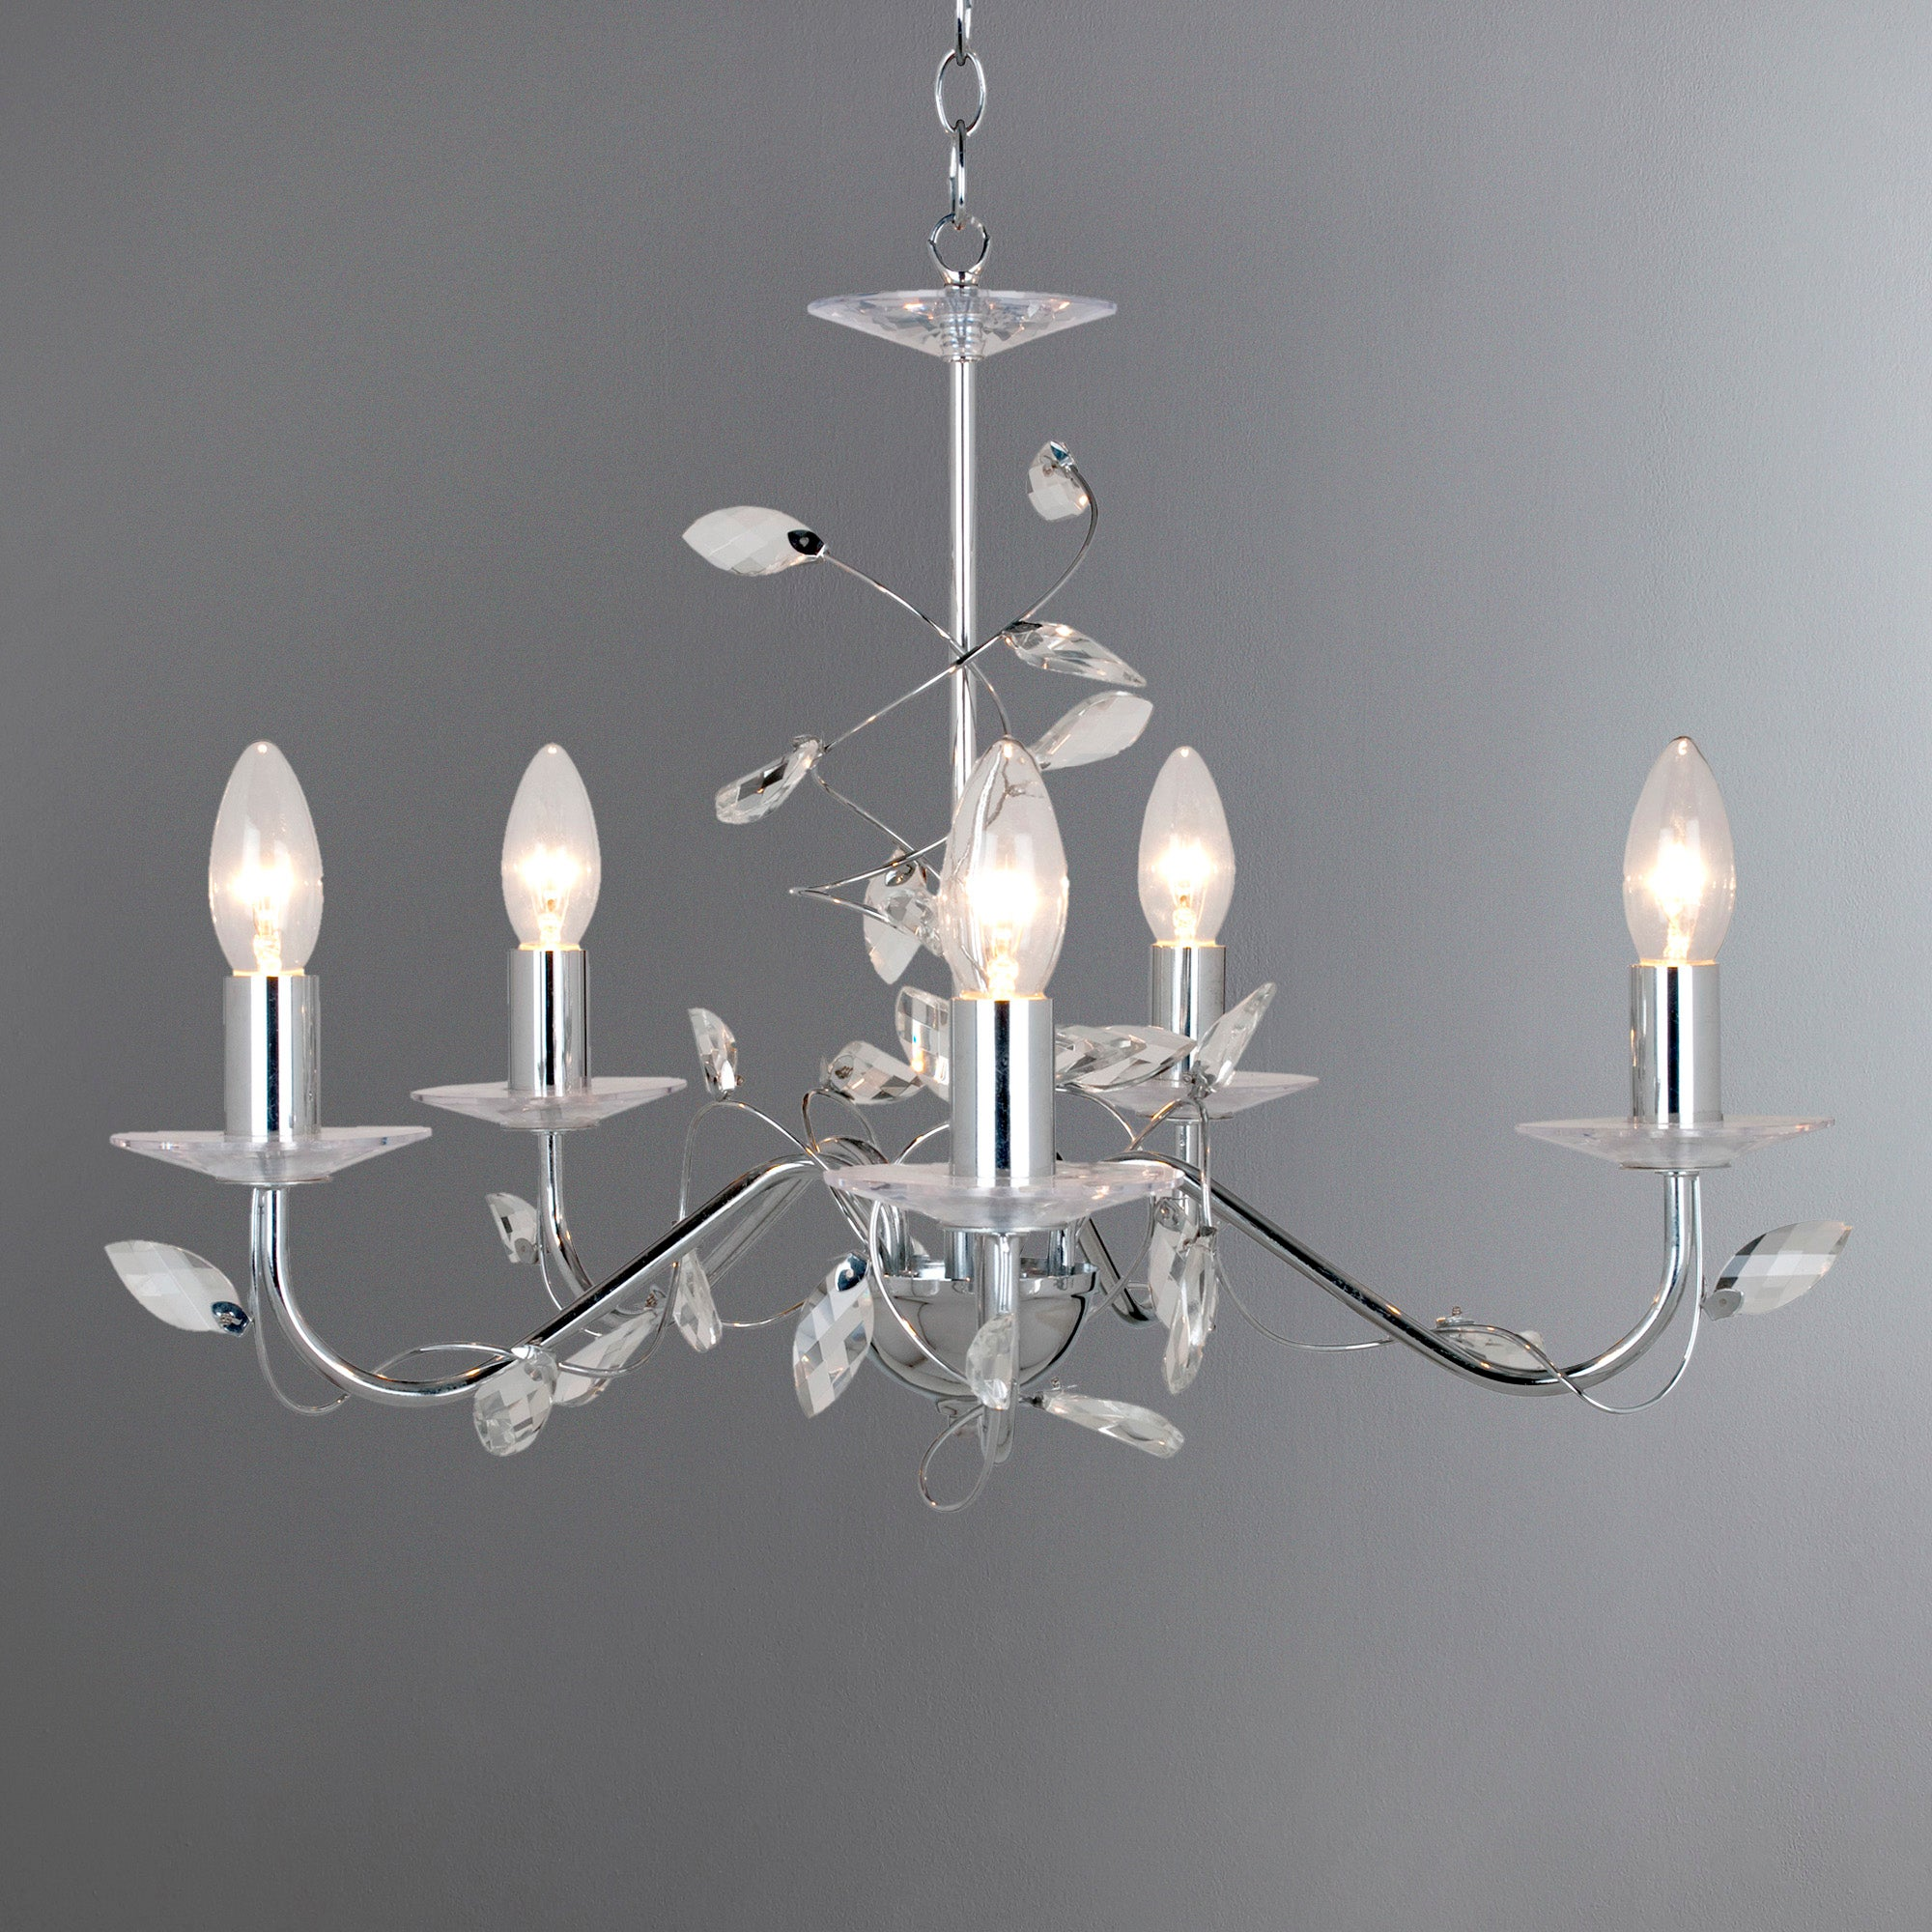 Beatrice Twist Jewelled 5 Light Fitting